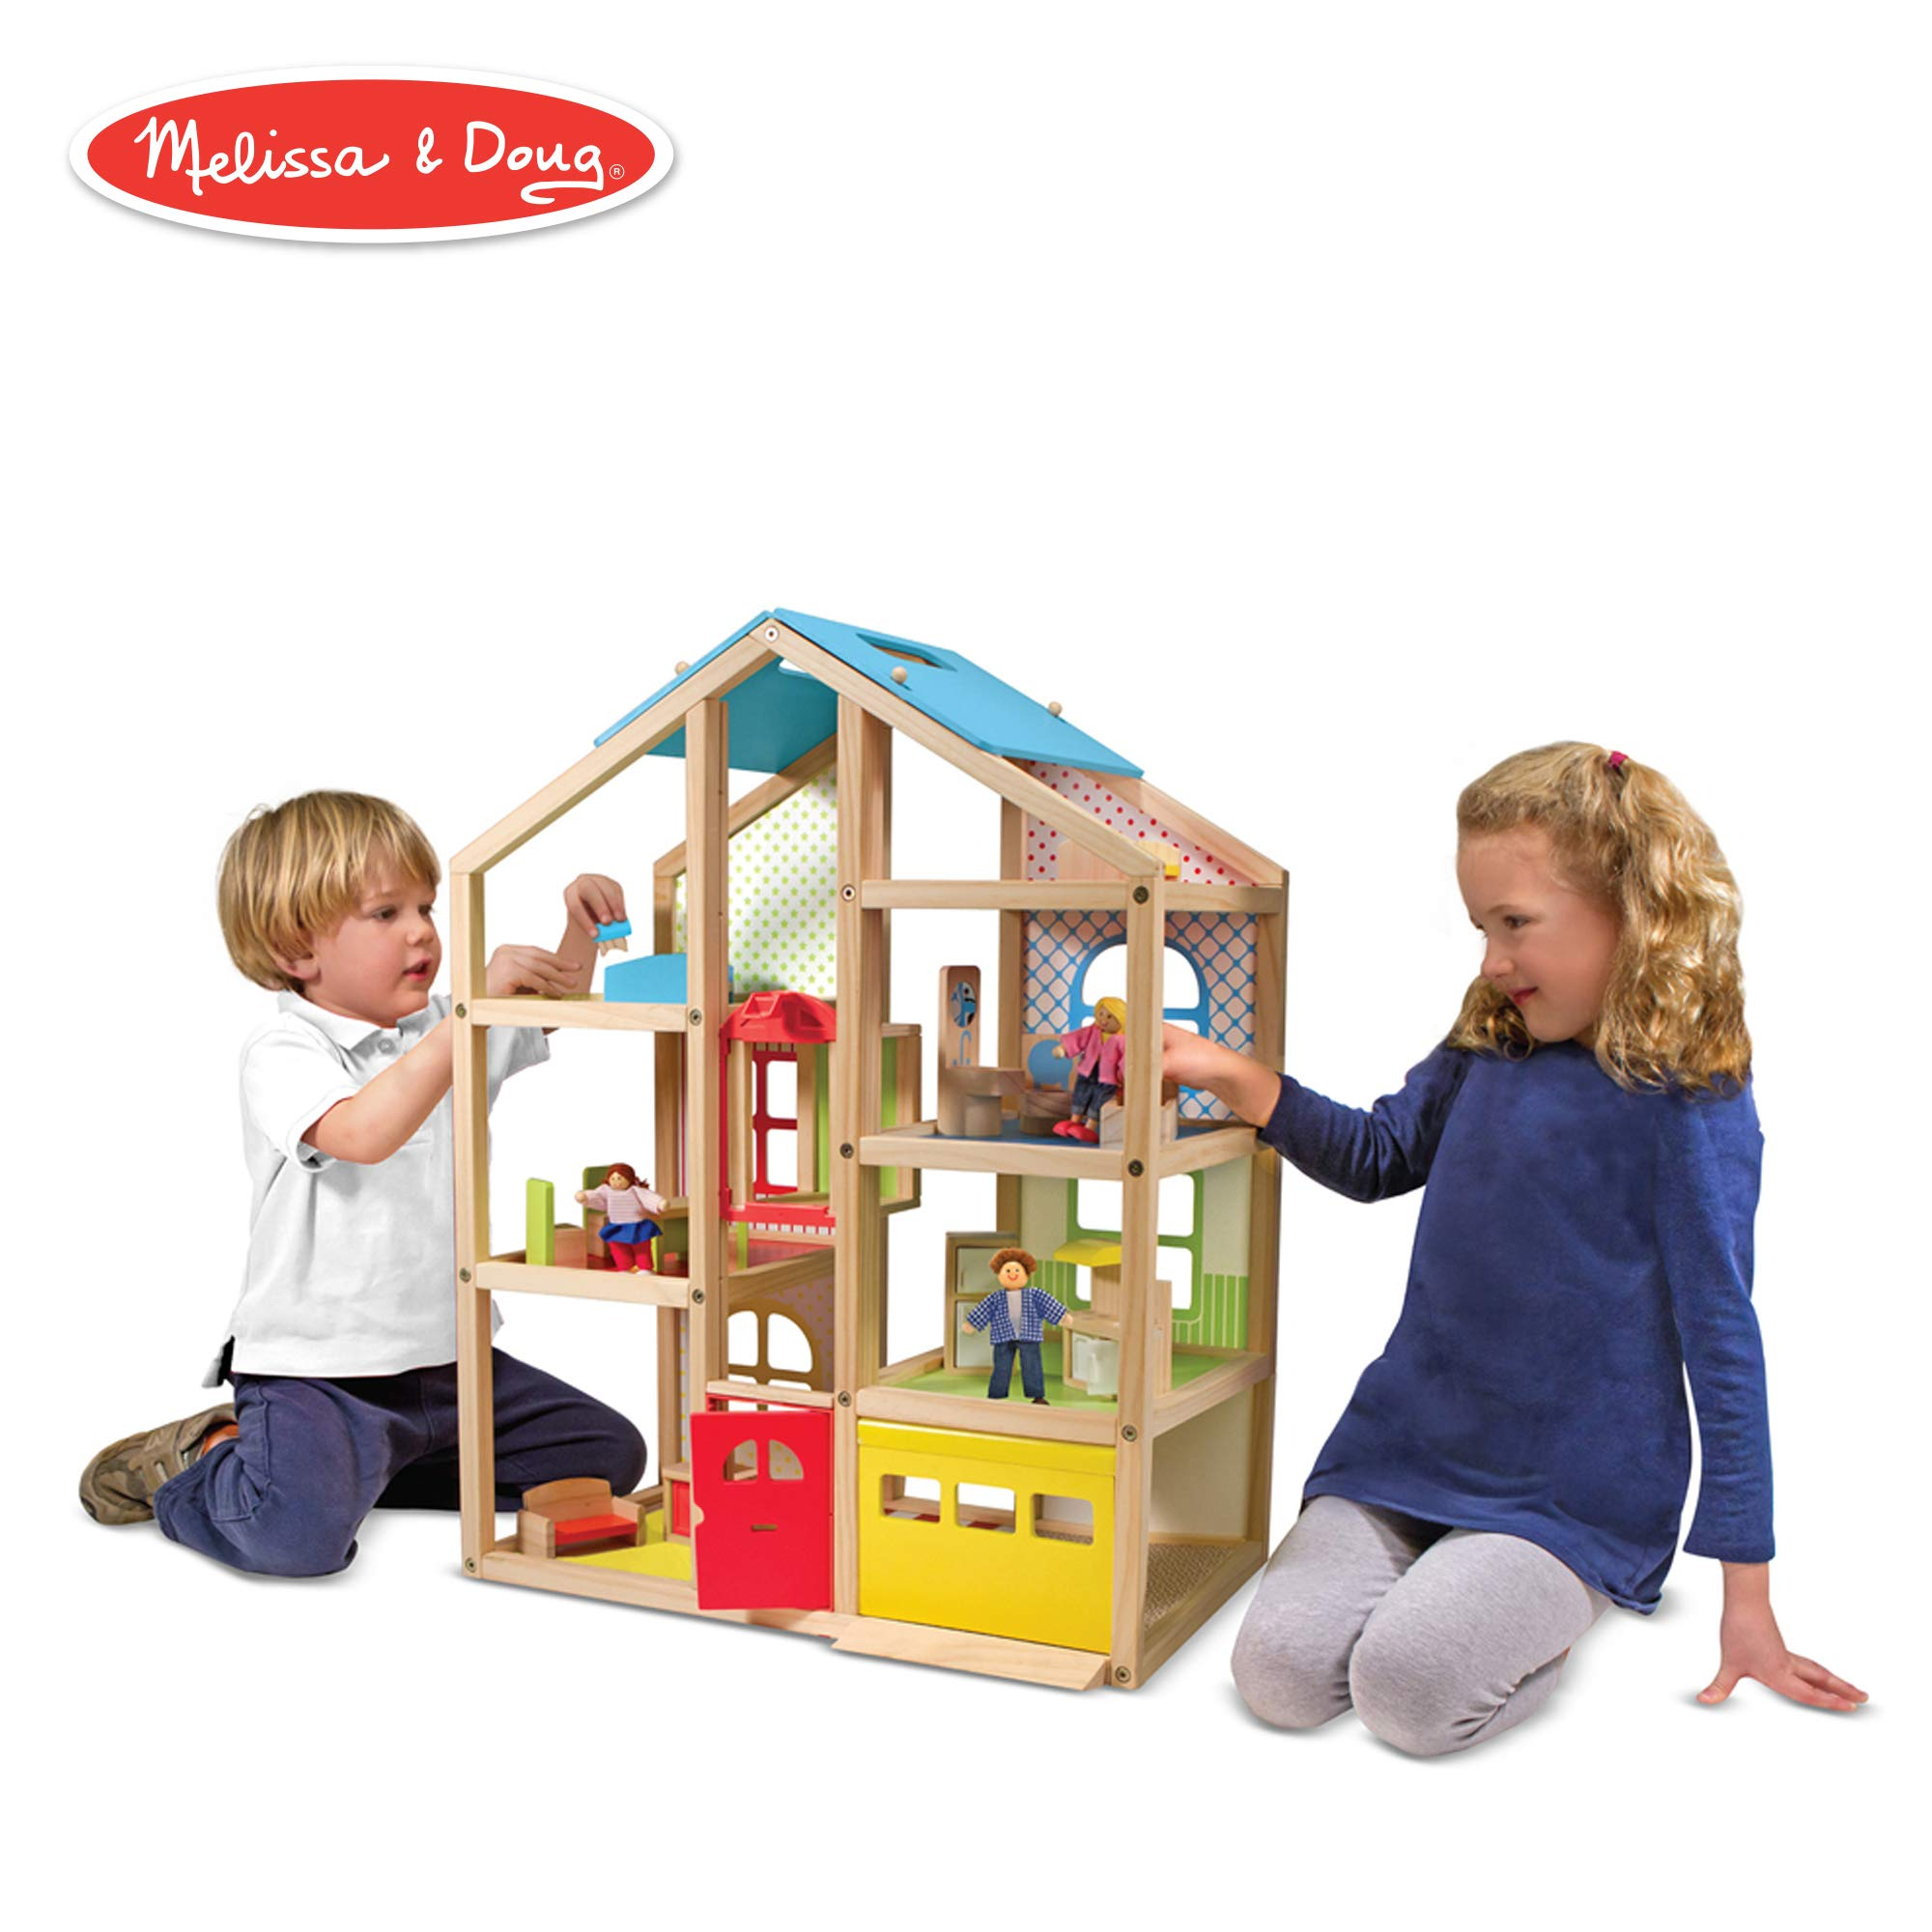 Melissa & Doug Hi-Rise Wooden Dollhouse and Furniture Set (1:12 Scale Dollhouse, Multi-Color, 18 Pieces, 30″ H × 23.75″ W × 13″ L, Great Gift for Girls and Boys – Best for 3, 4, 5, and 6 Year Olds)